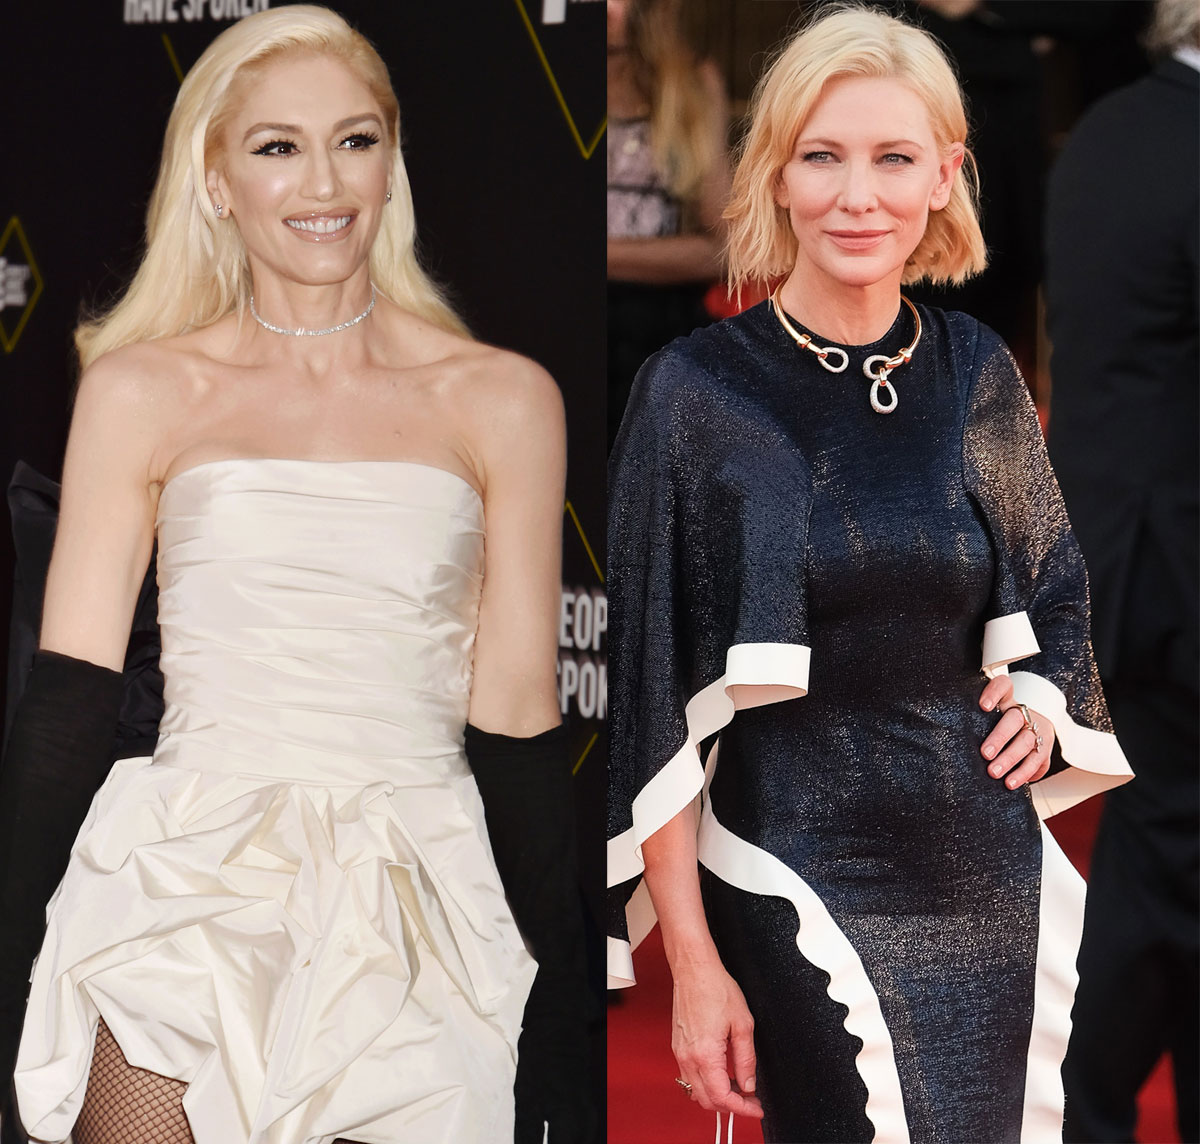 Gwen Stefani and Cate Blanchett are actually the same age!